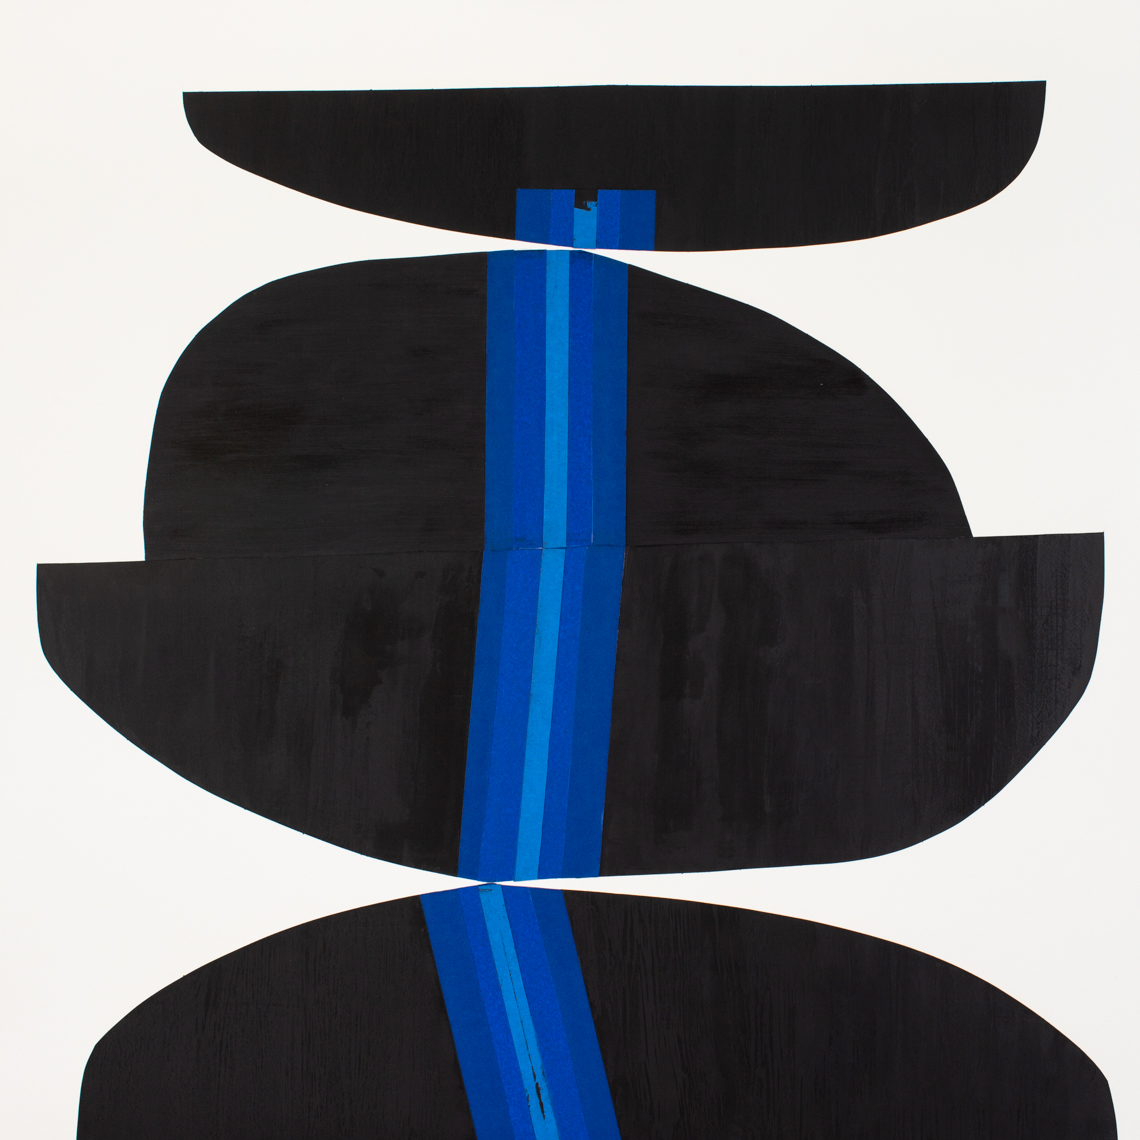 263 from Simplicity series - $4200